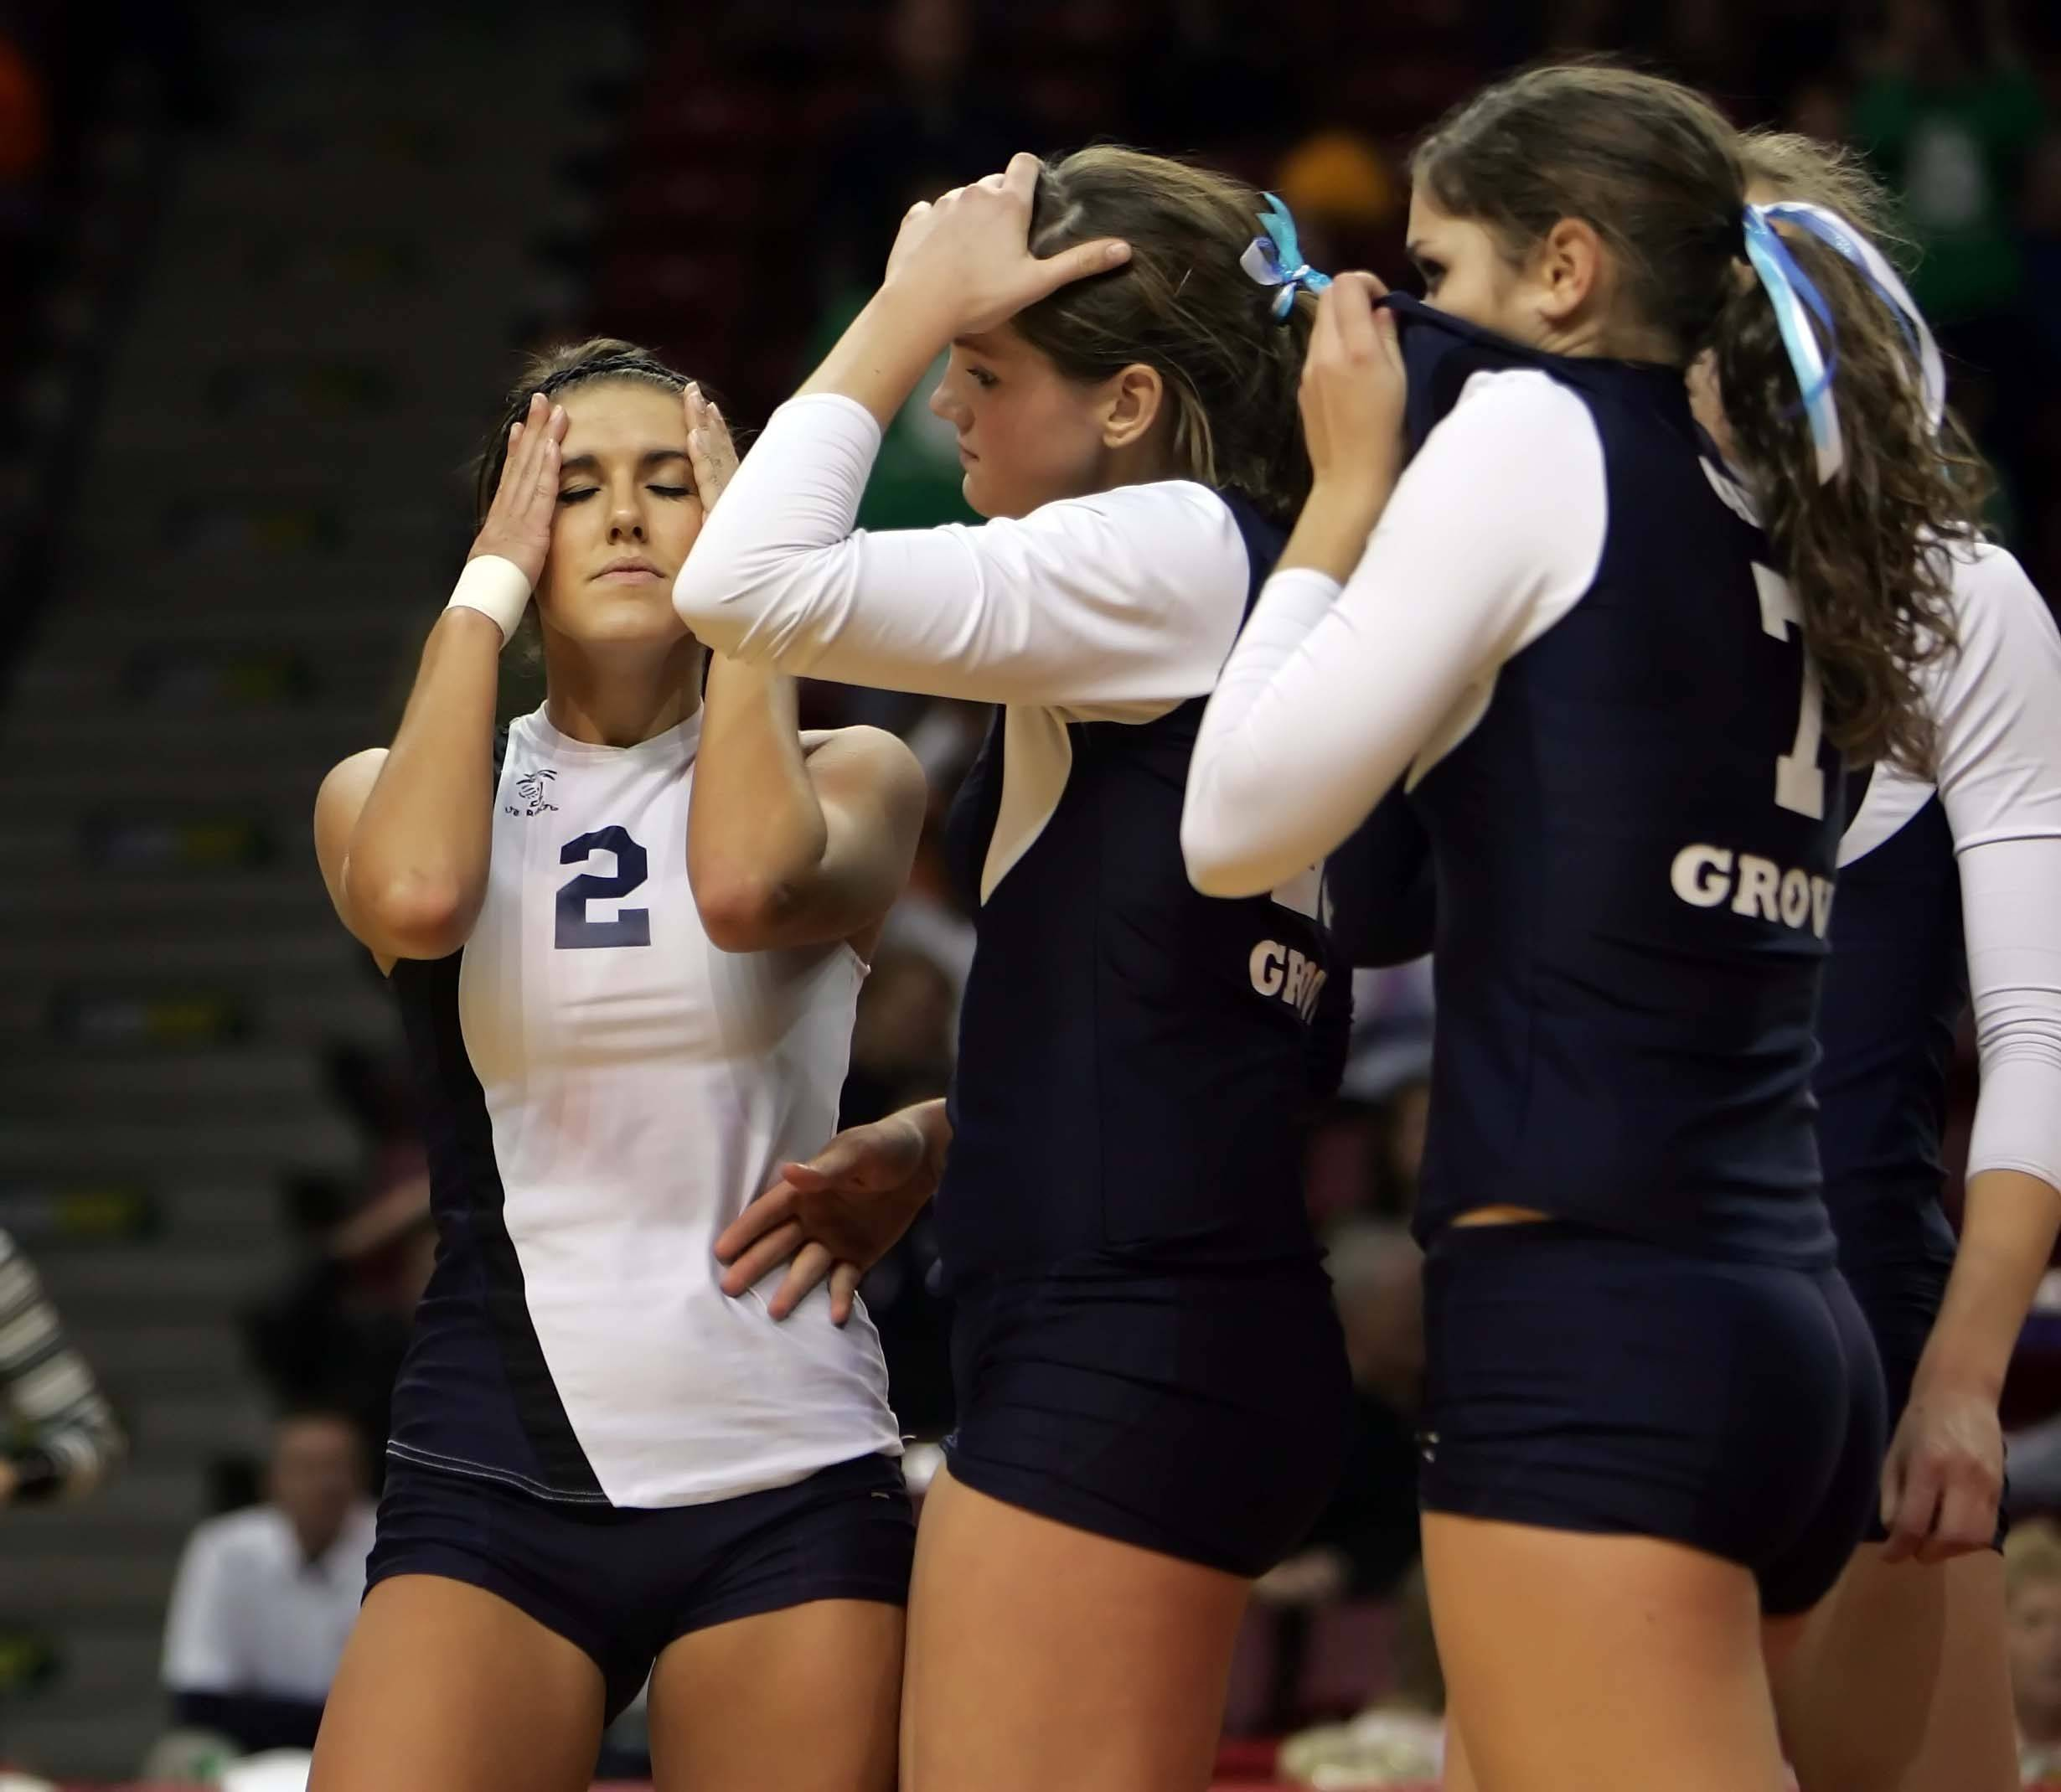 Cary-Grove libero Sam Mainzer, 2, reacts with her teammates after their loss to Lyons.